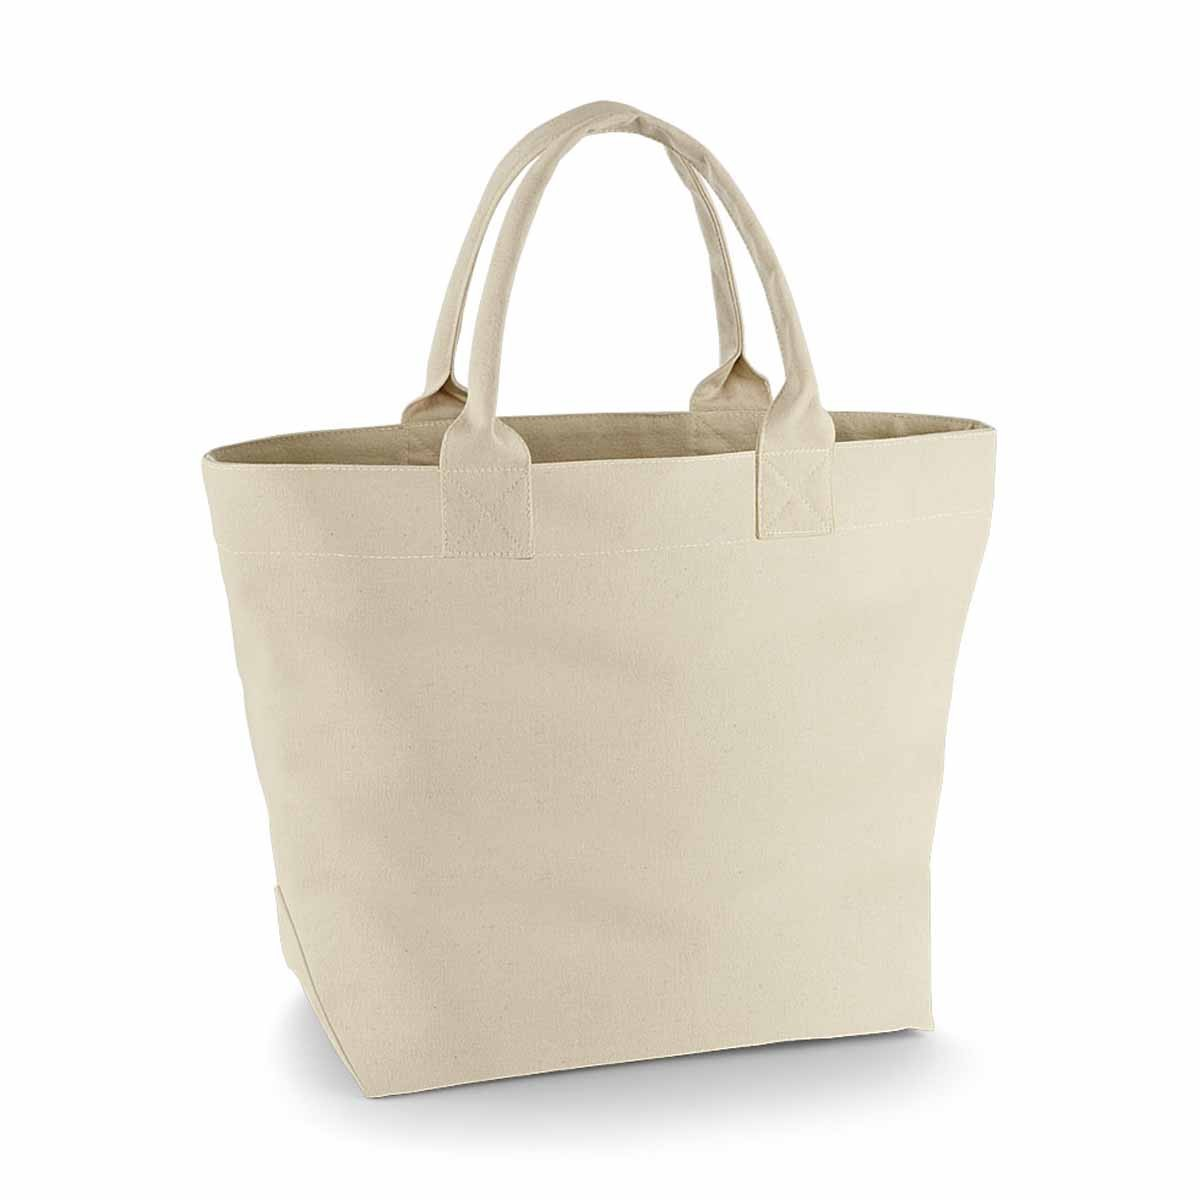 Sac cabas shopping ou plage en toile - QD26 - beige naturel